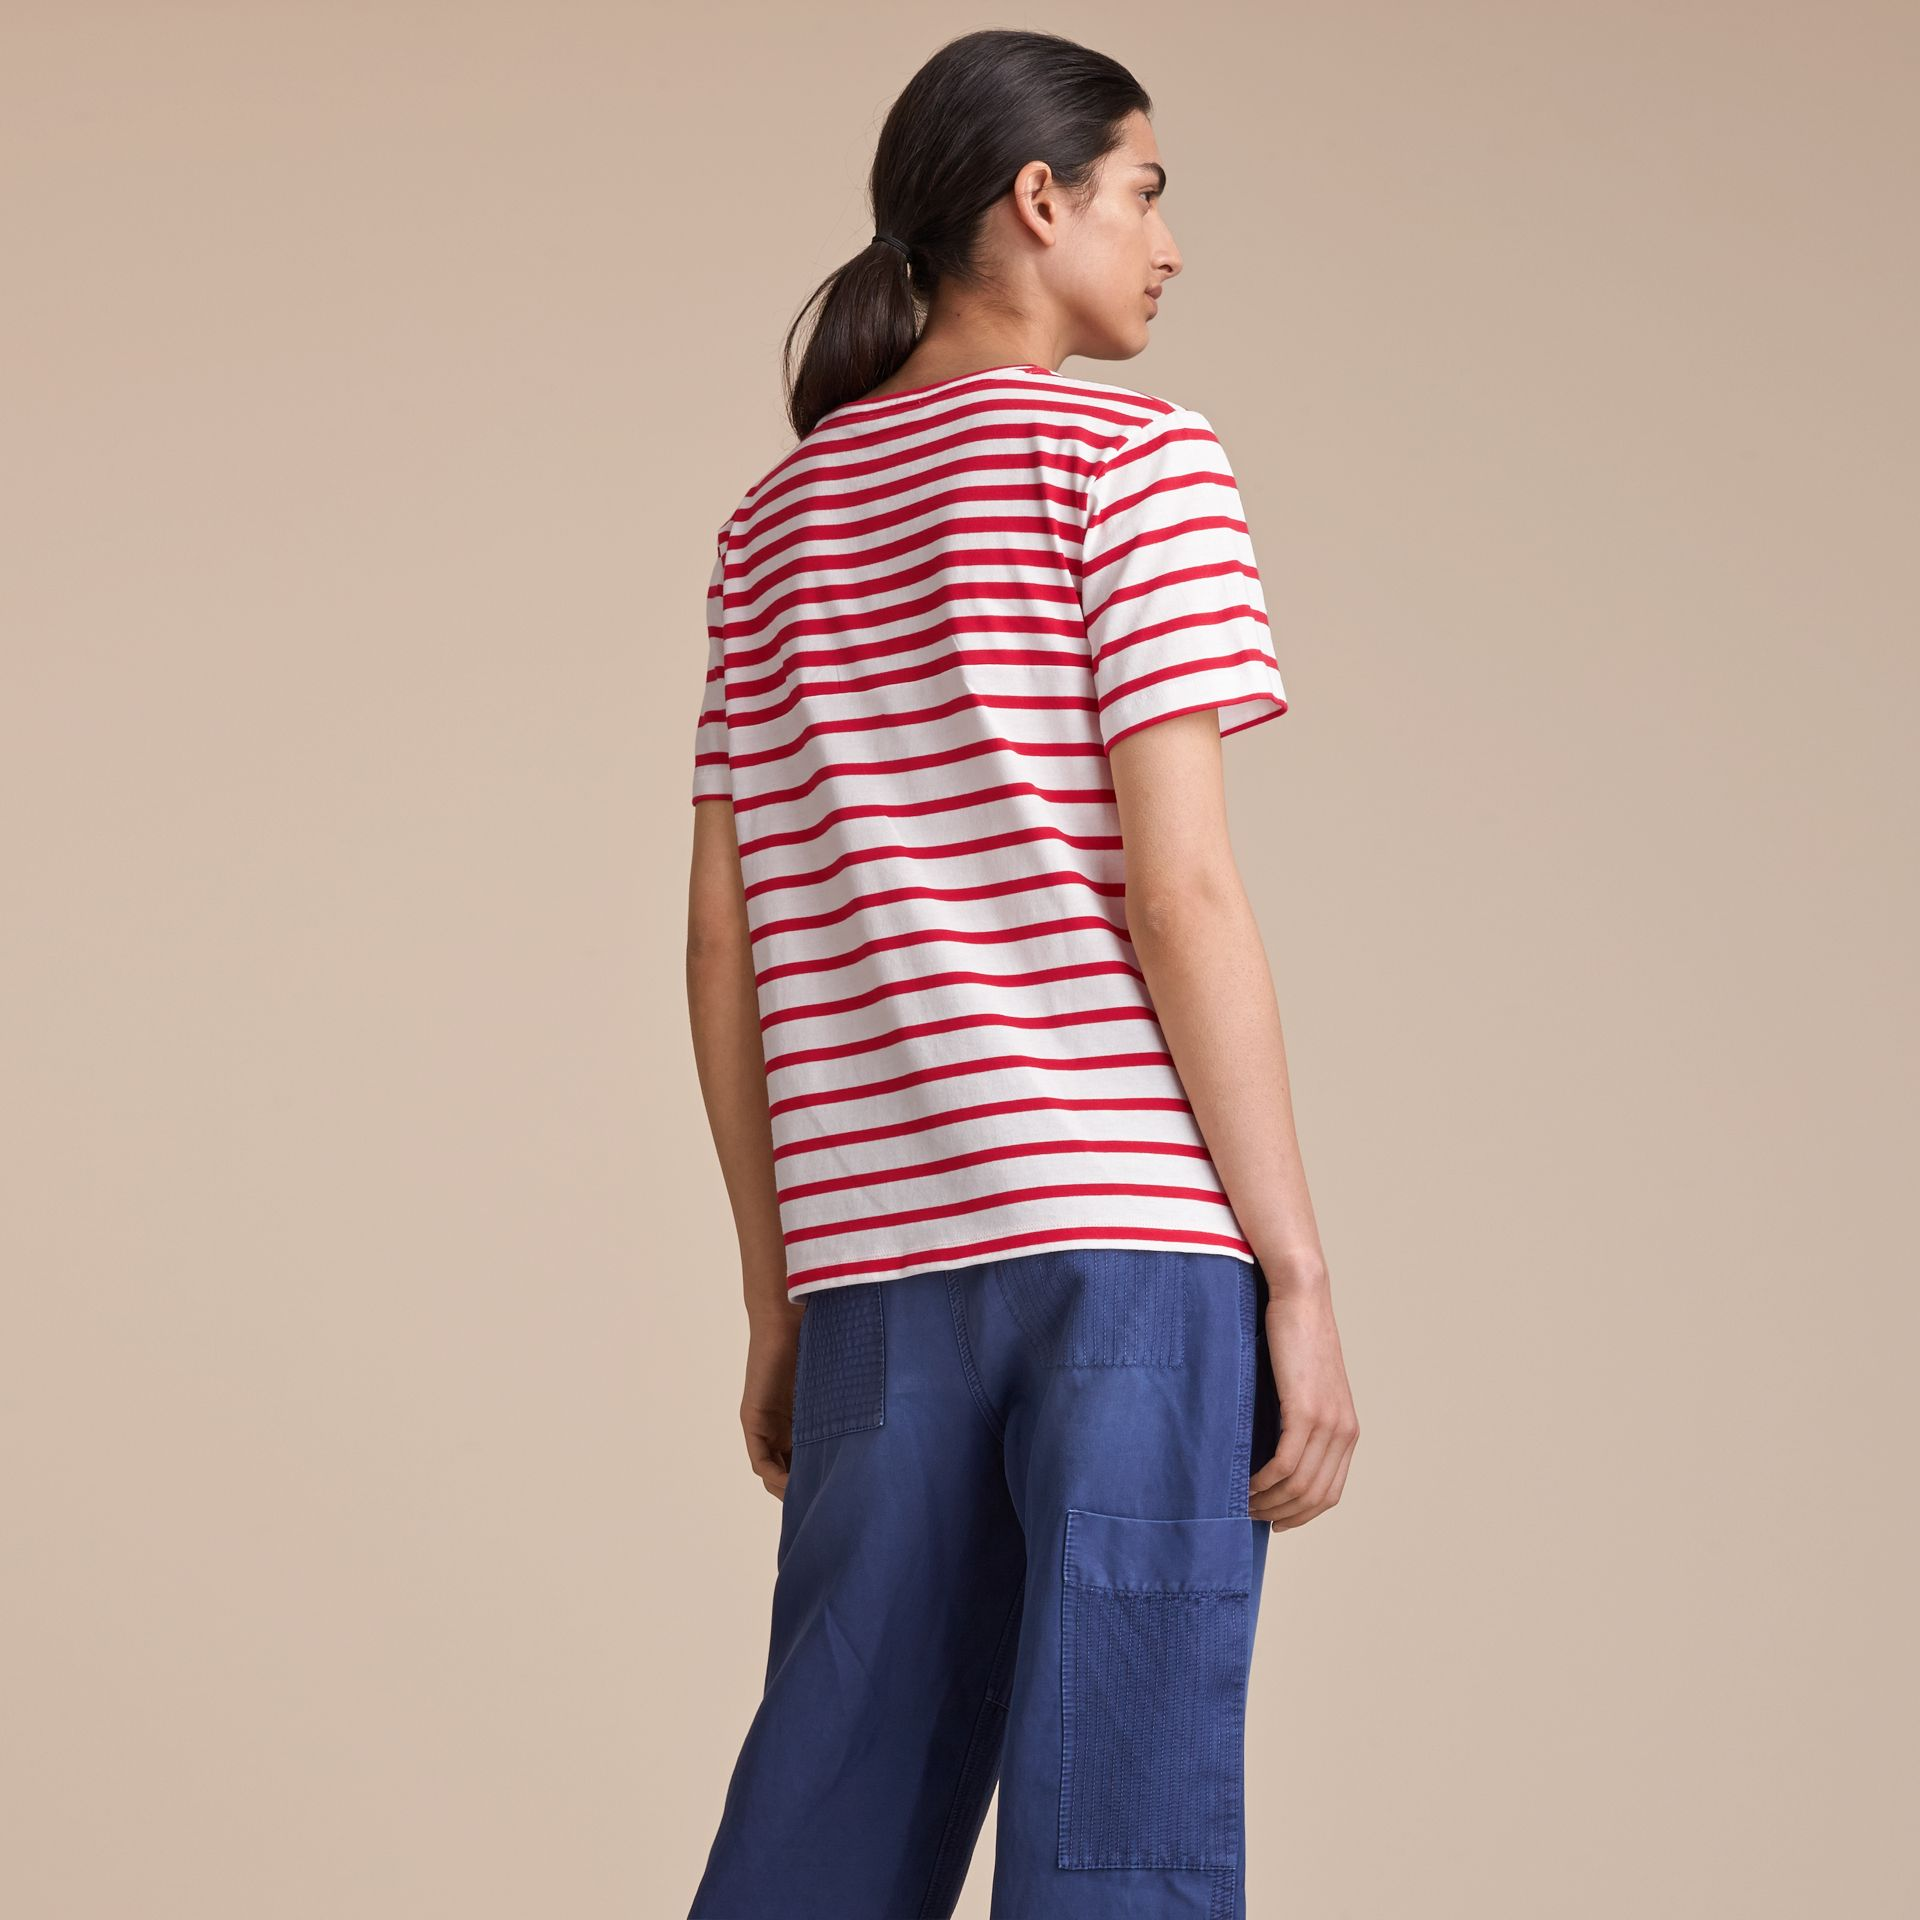 Breton Stripe Cotton T-shirt in Military Red/white - Women | Burberry Canada - gallery image 3